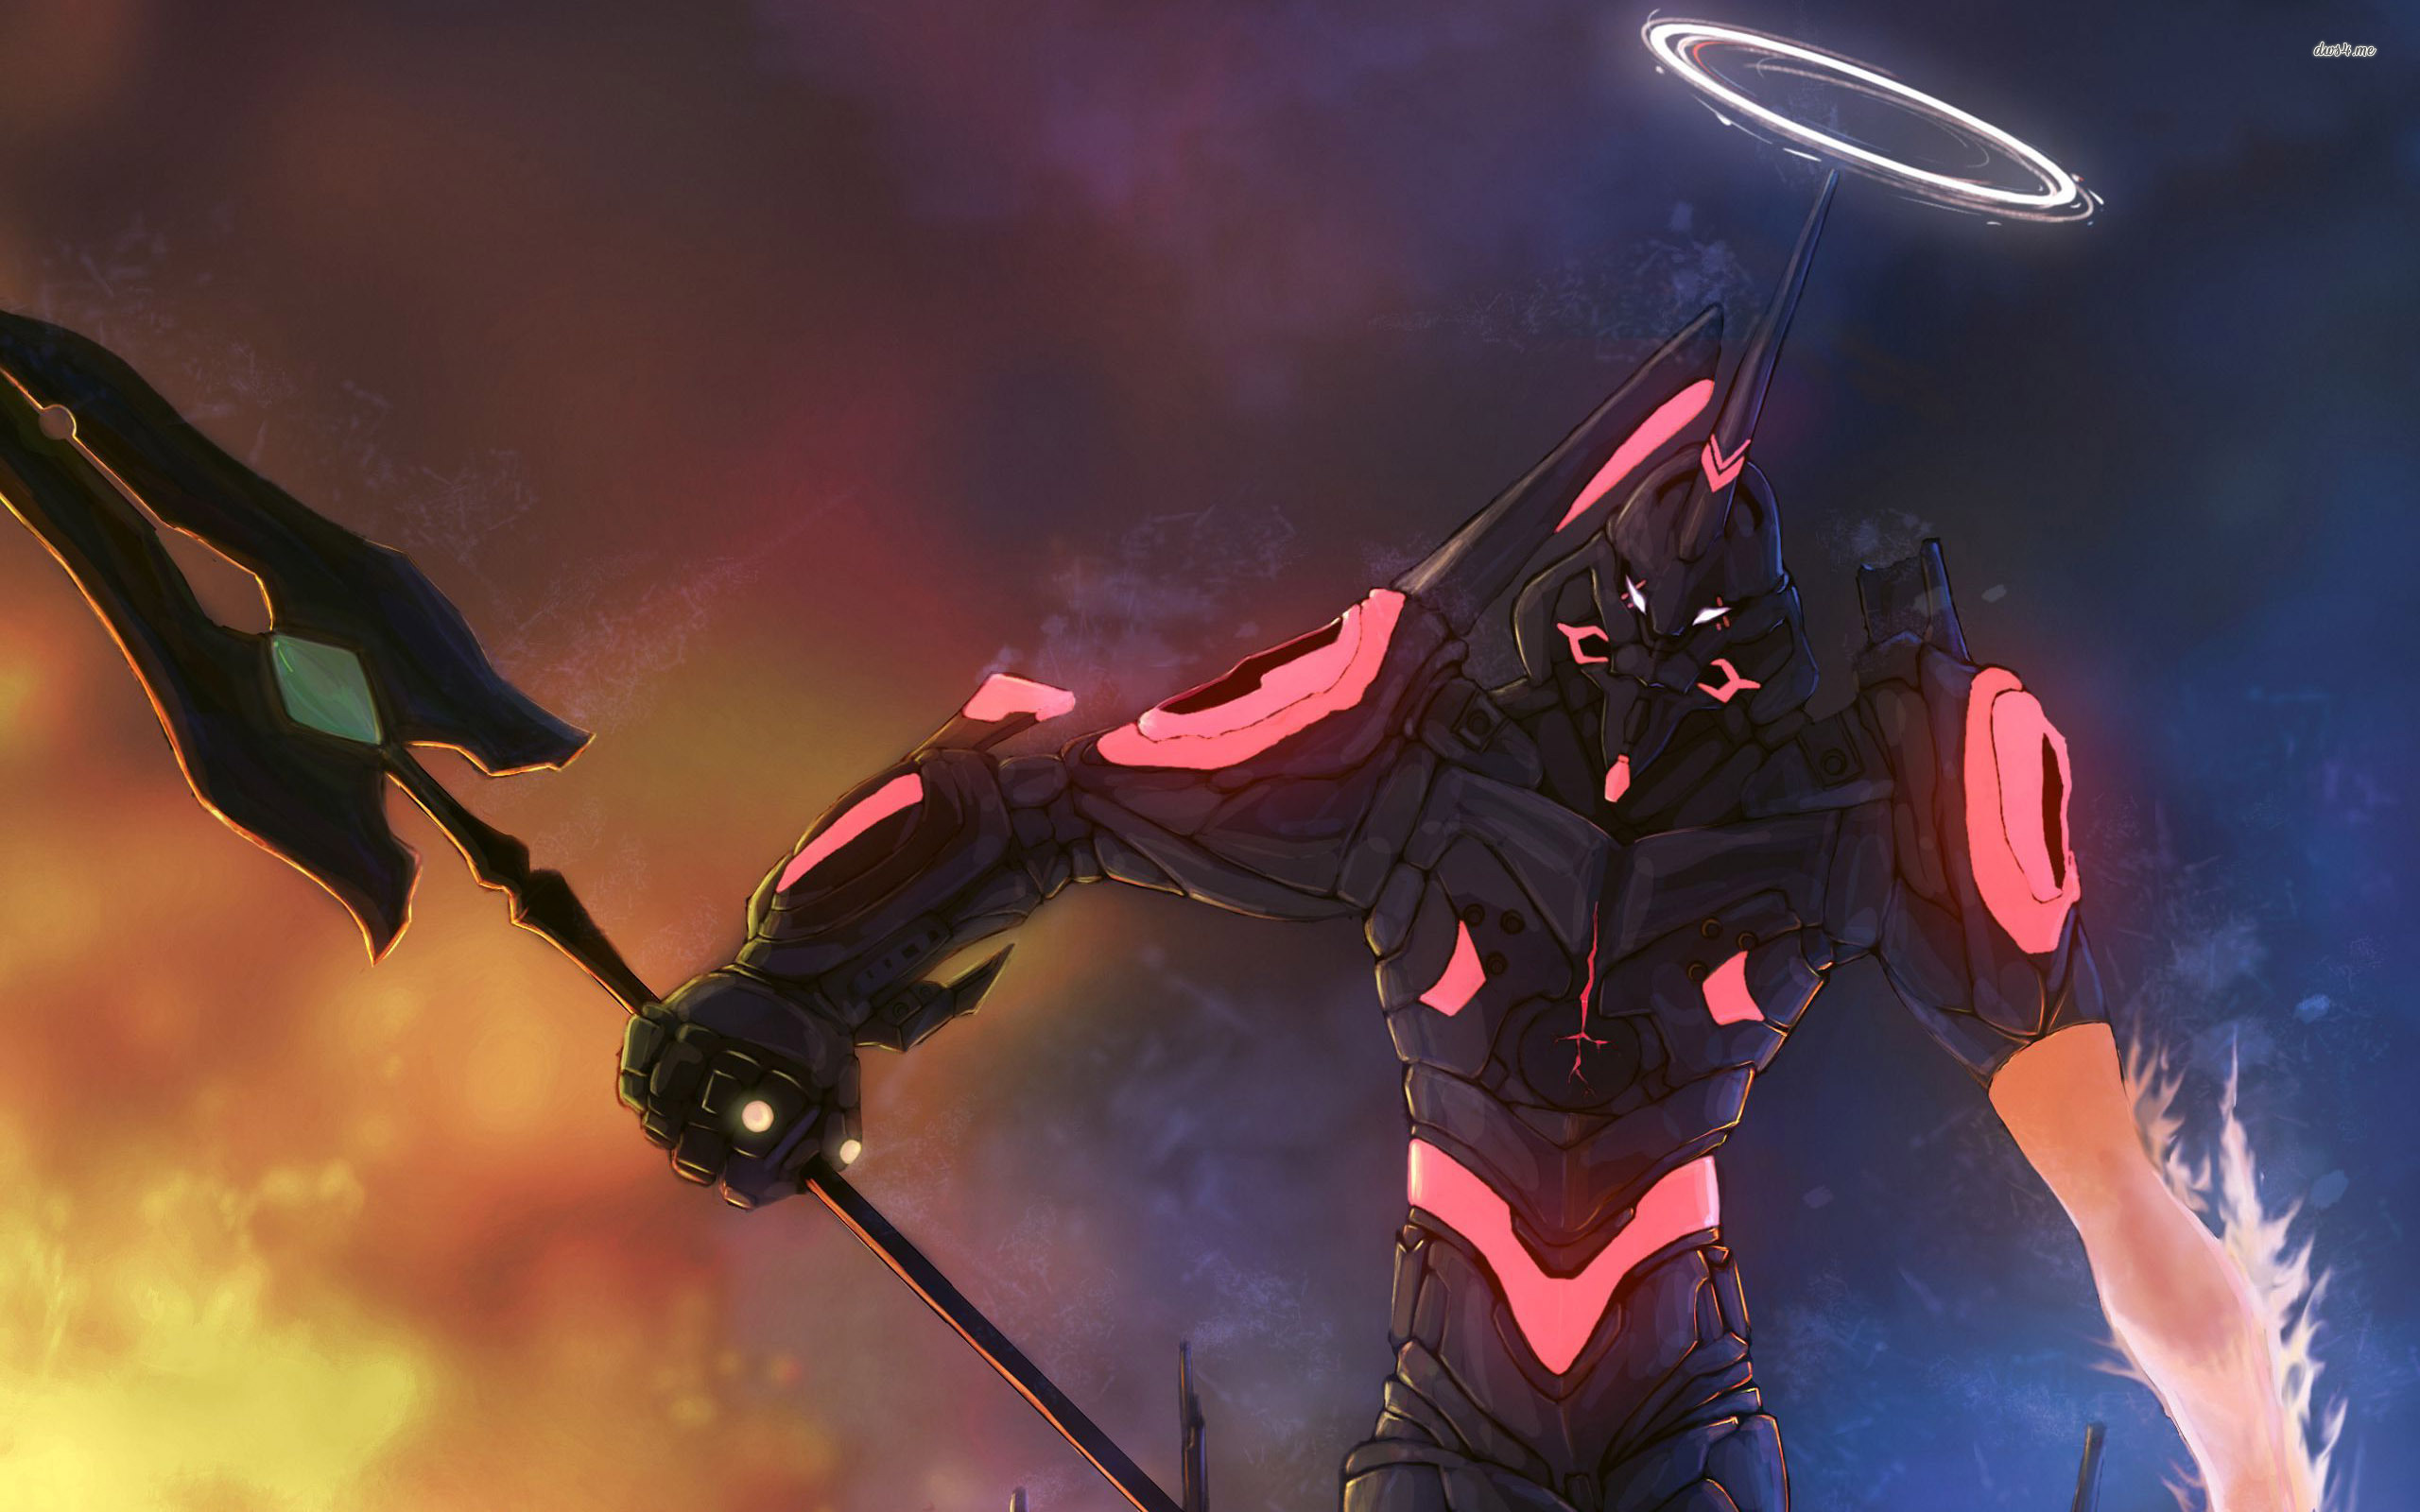 4k Evangelion Wallpaper Posted By Christopher Tremblay